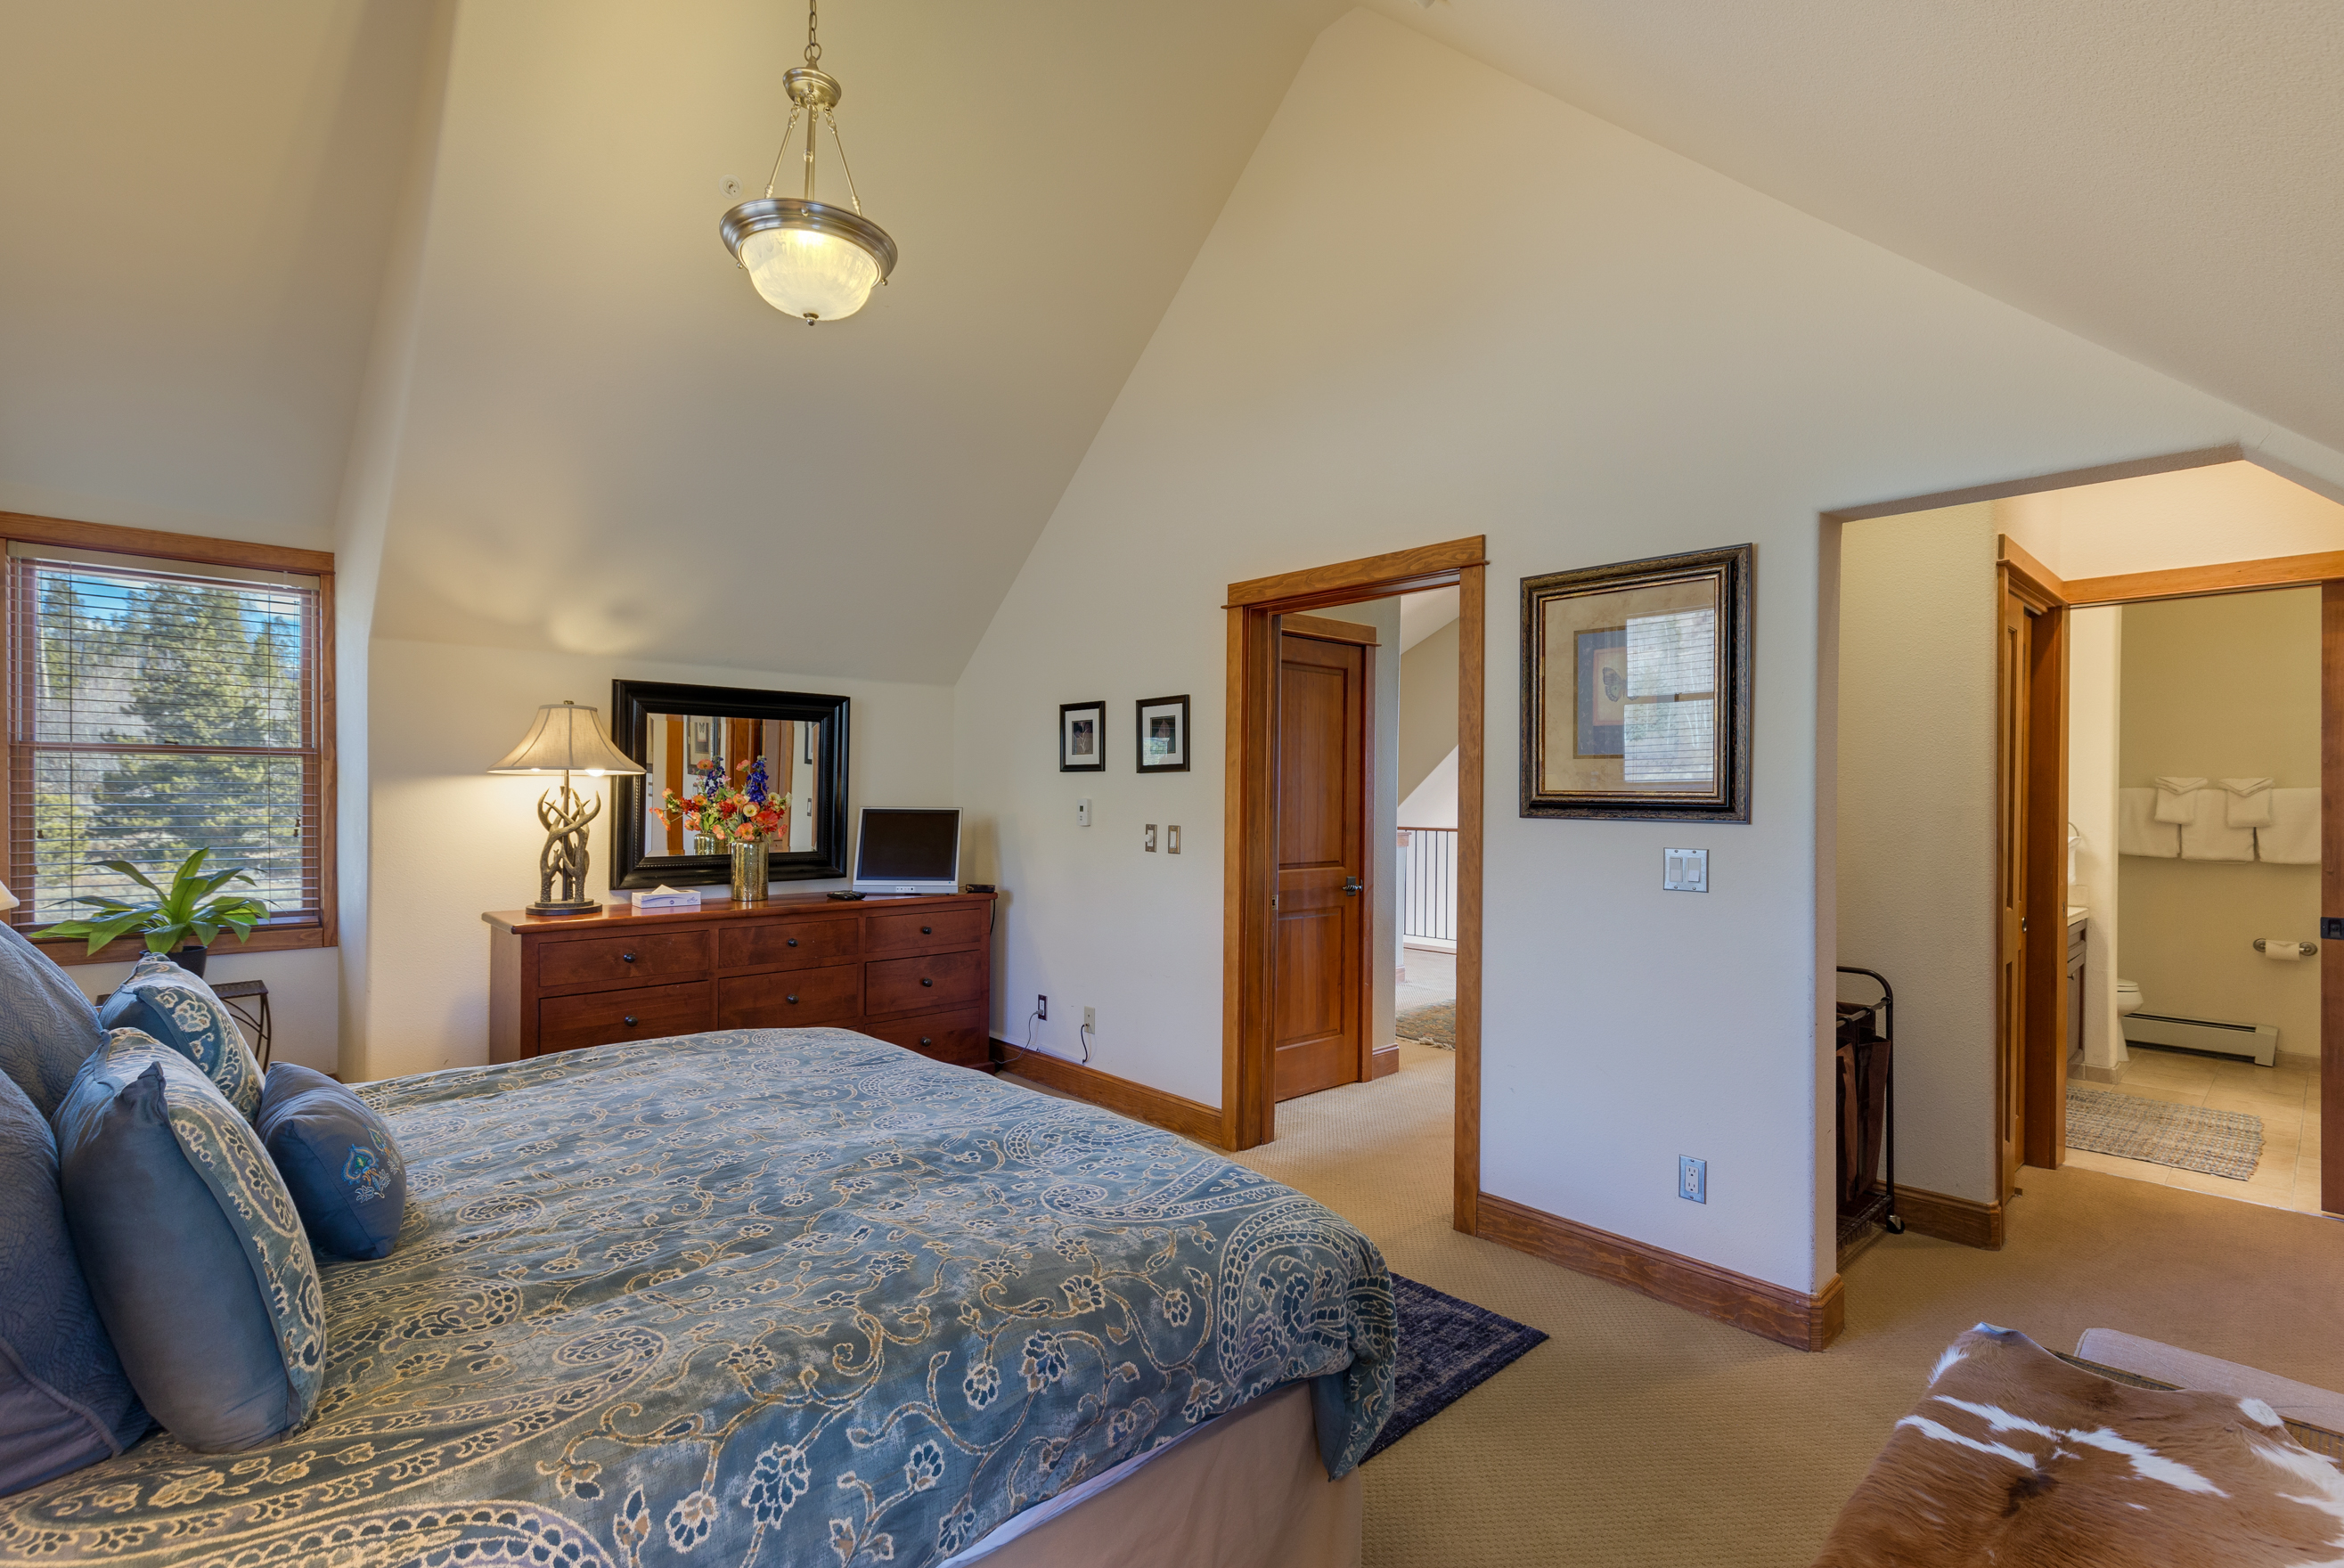 The master bedroom features a king-sized bed, vaulted ceilings and a television.